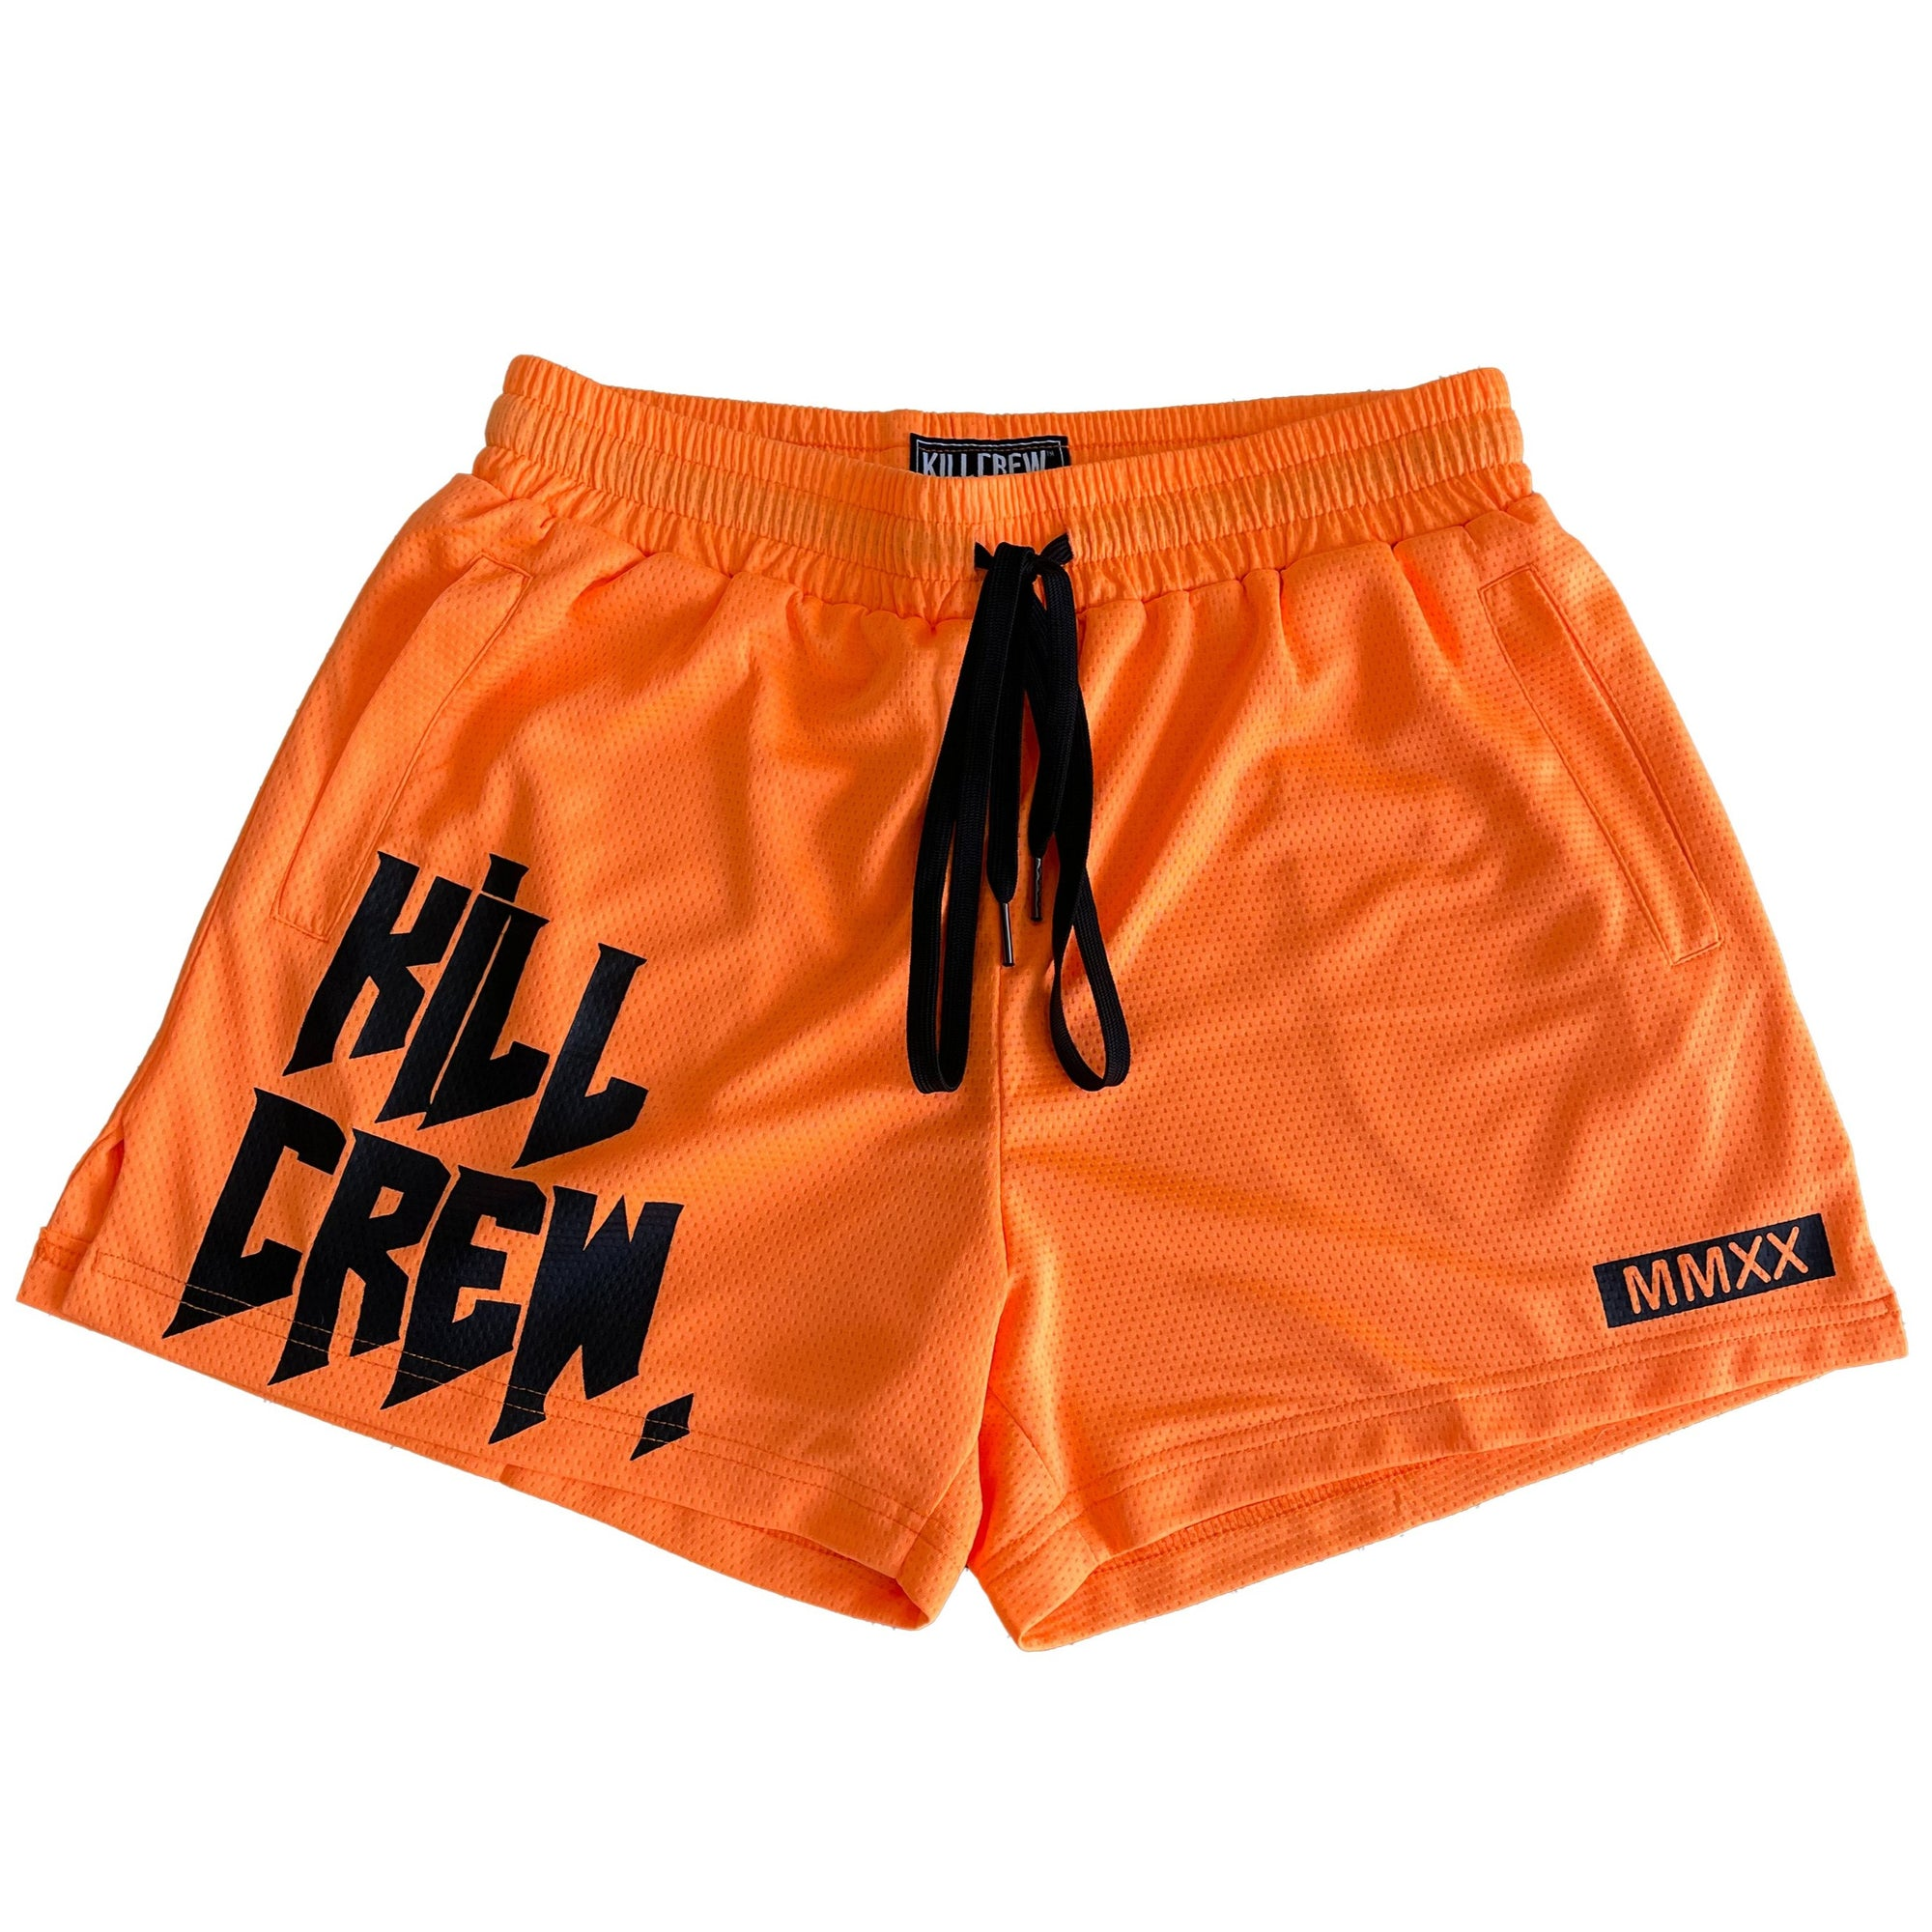 MUAY THAI SHORTS (MID THIGH CUT) - ORANGE